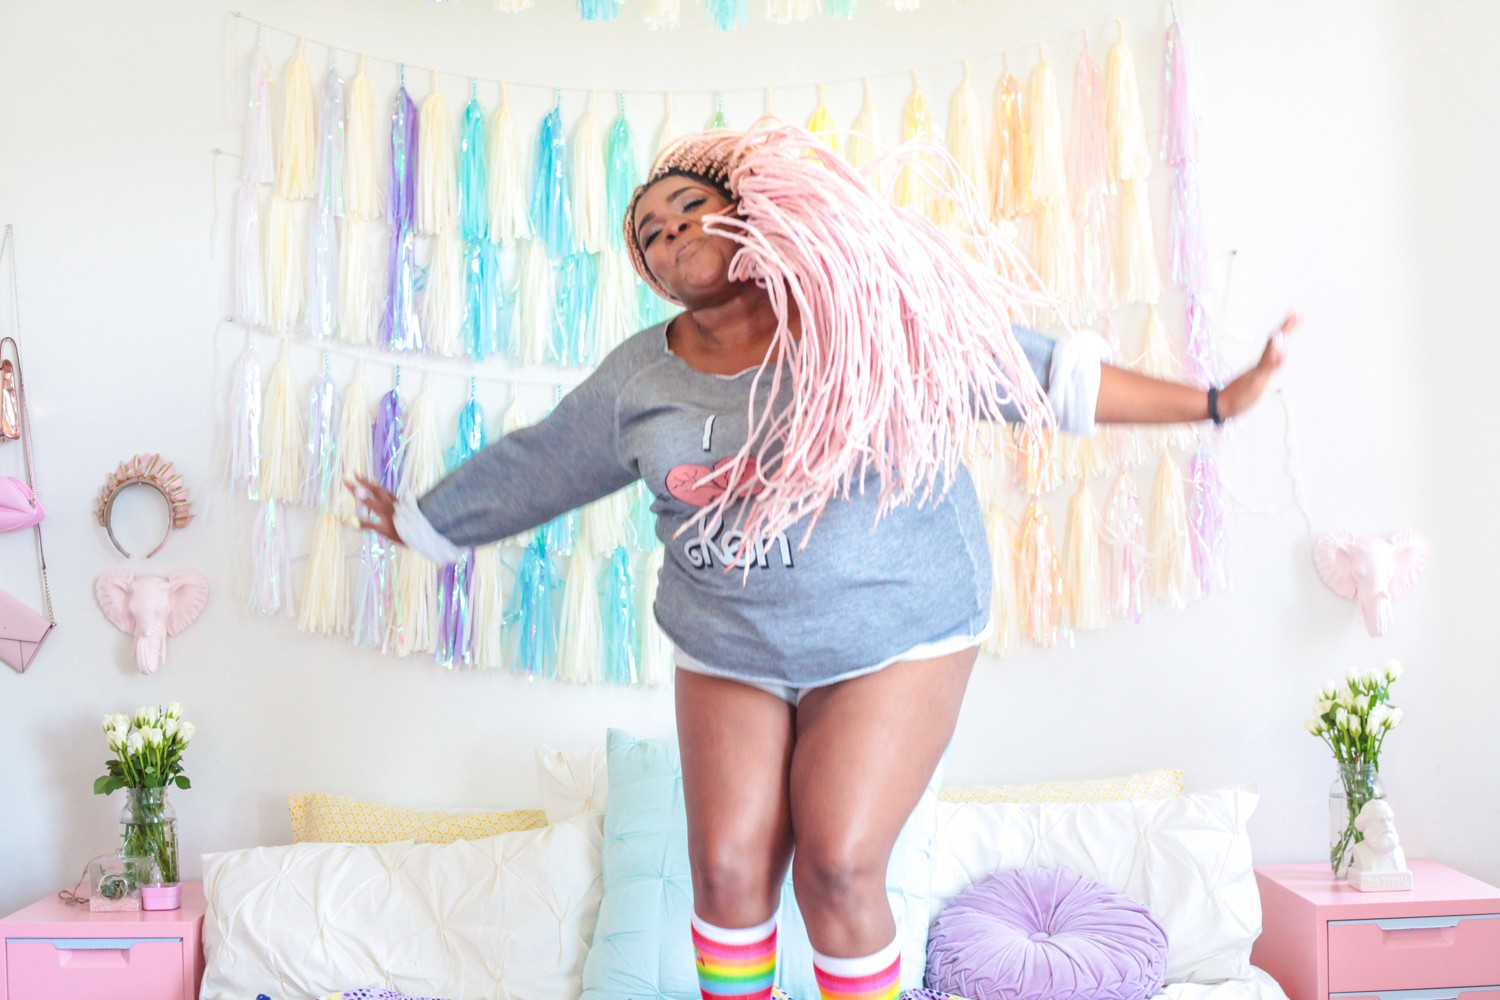 YouTuber Amina Mucciolo, jumping on a bed in rainbow socks and flipping her long pink braids.